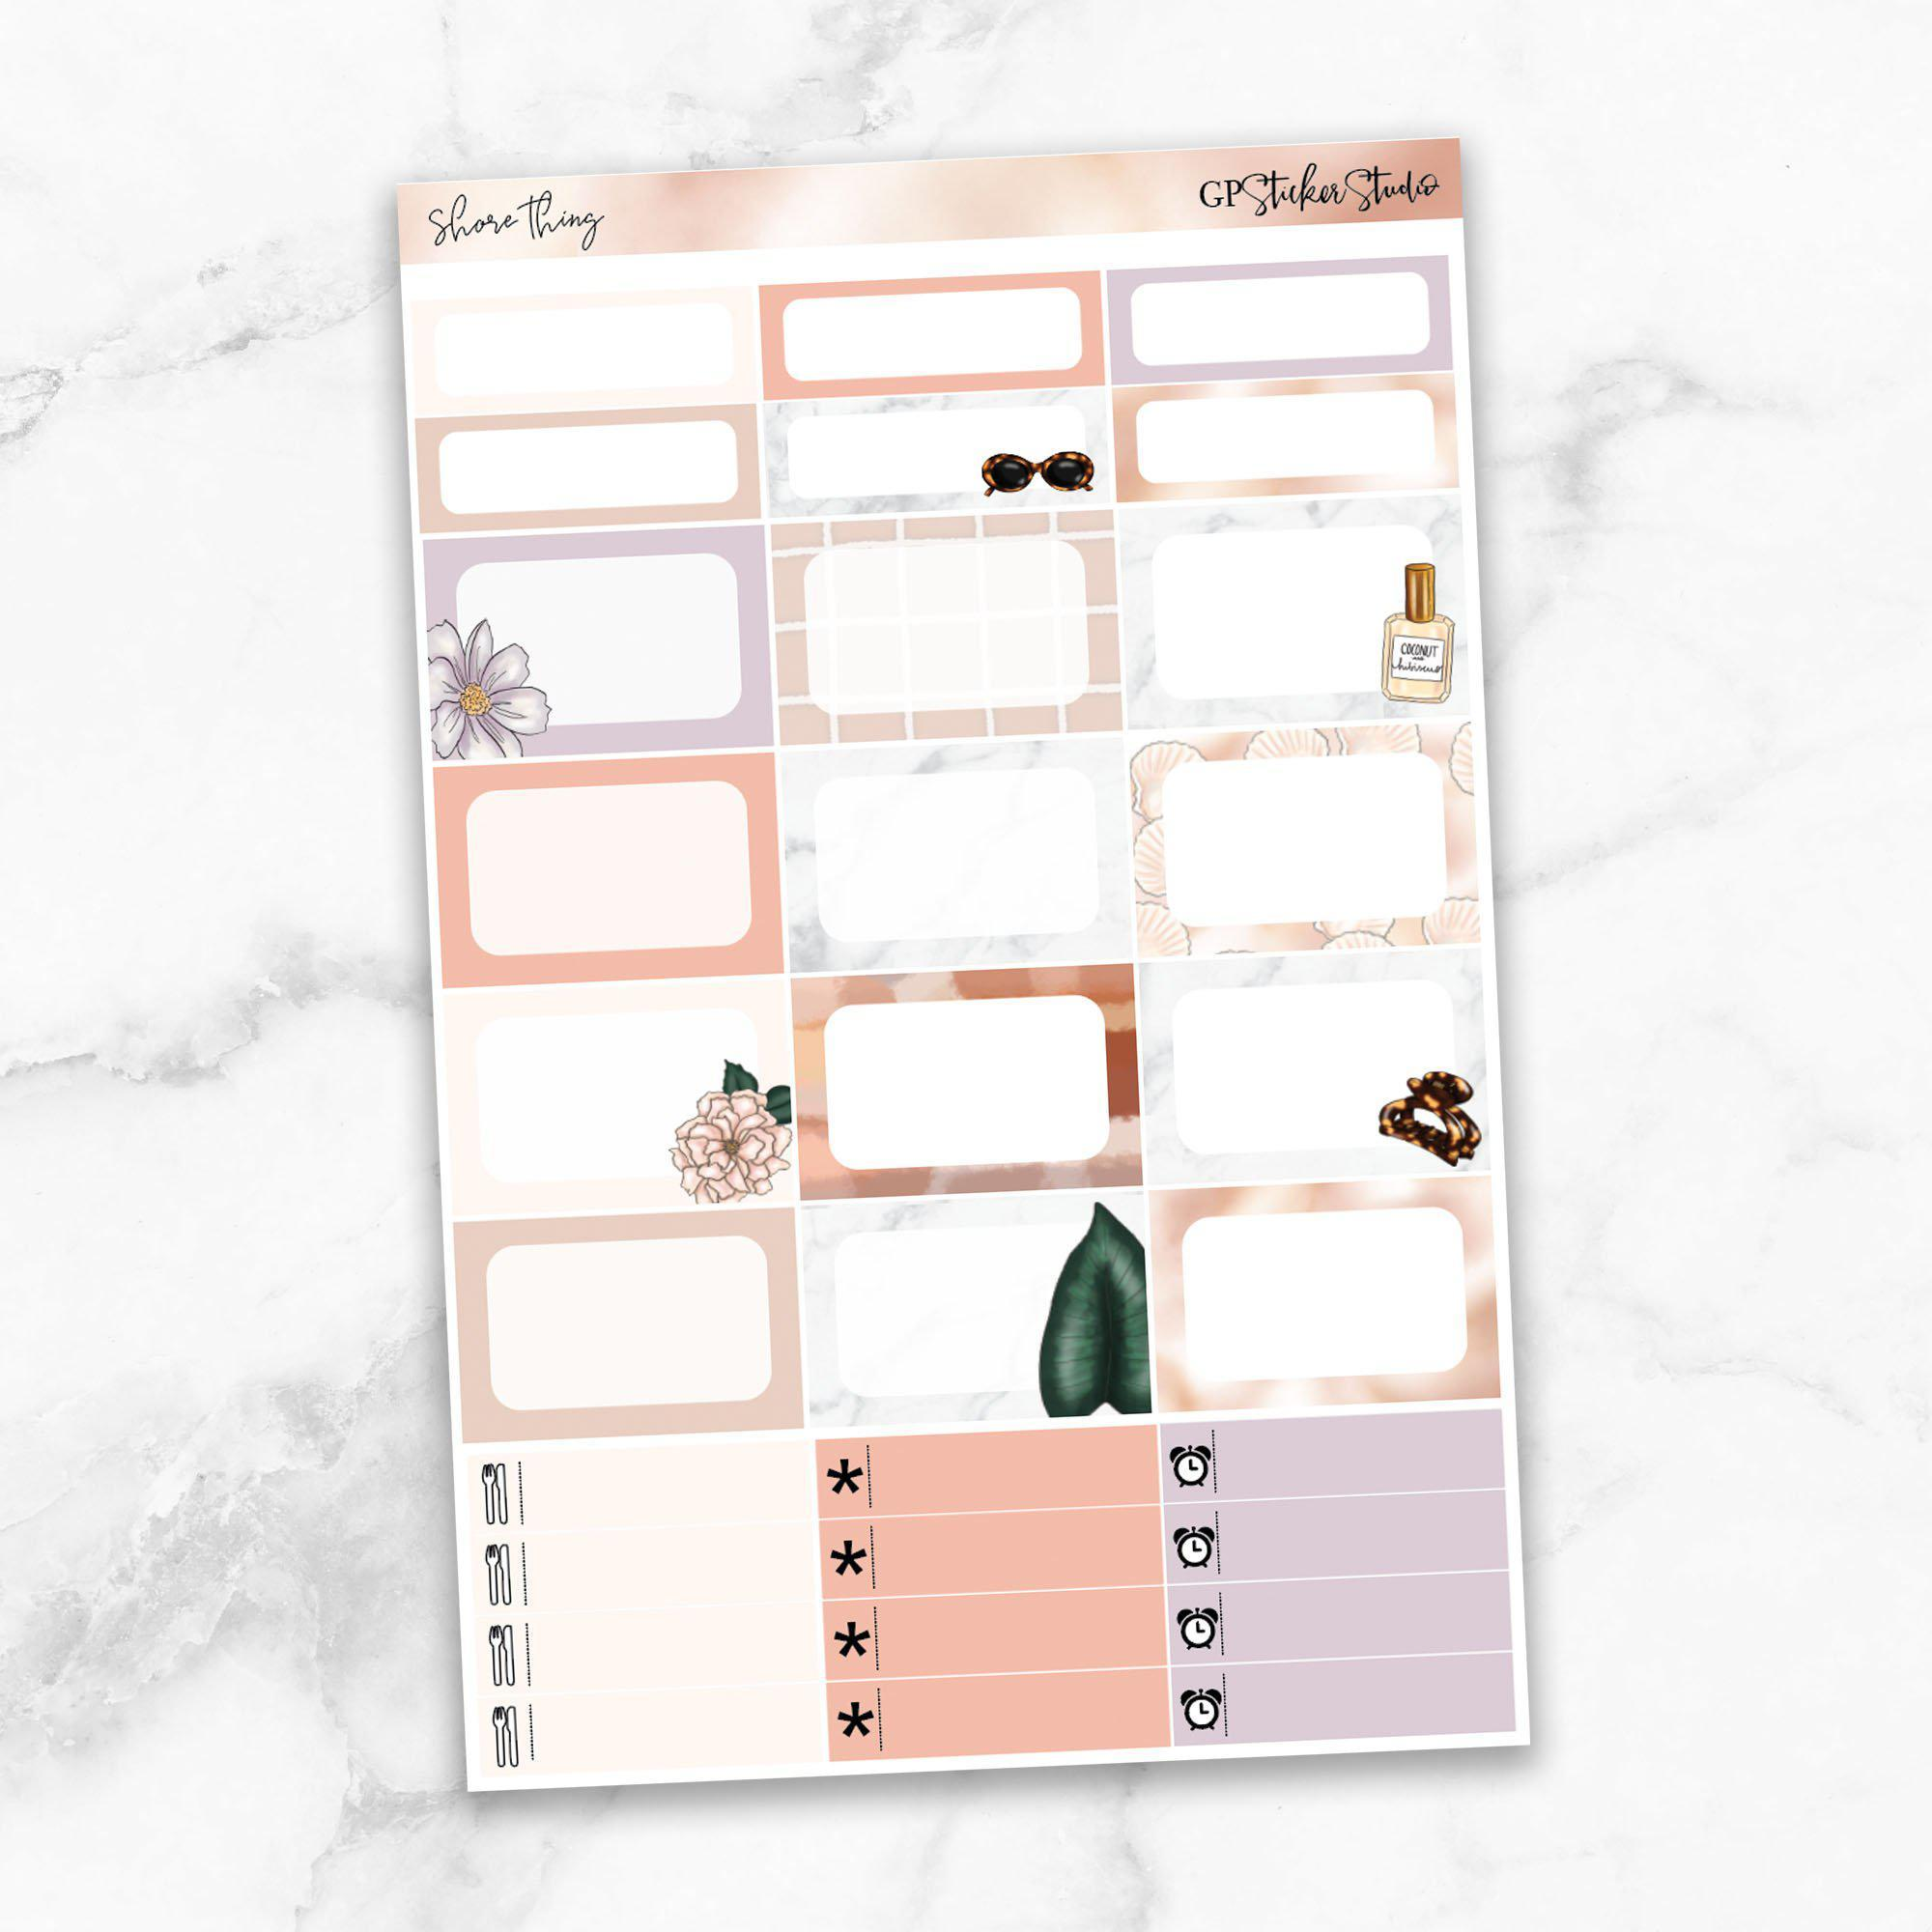 SHORE THING Half Boxes Planner Stickers-The GP Studio